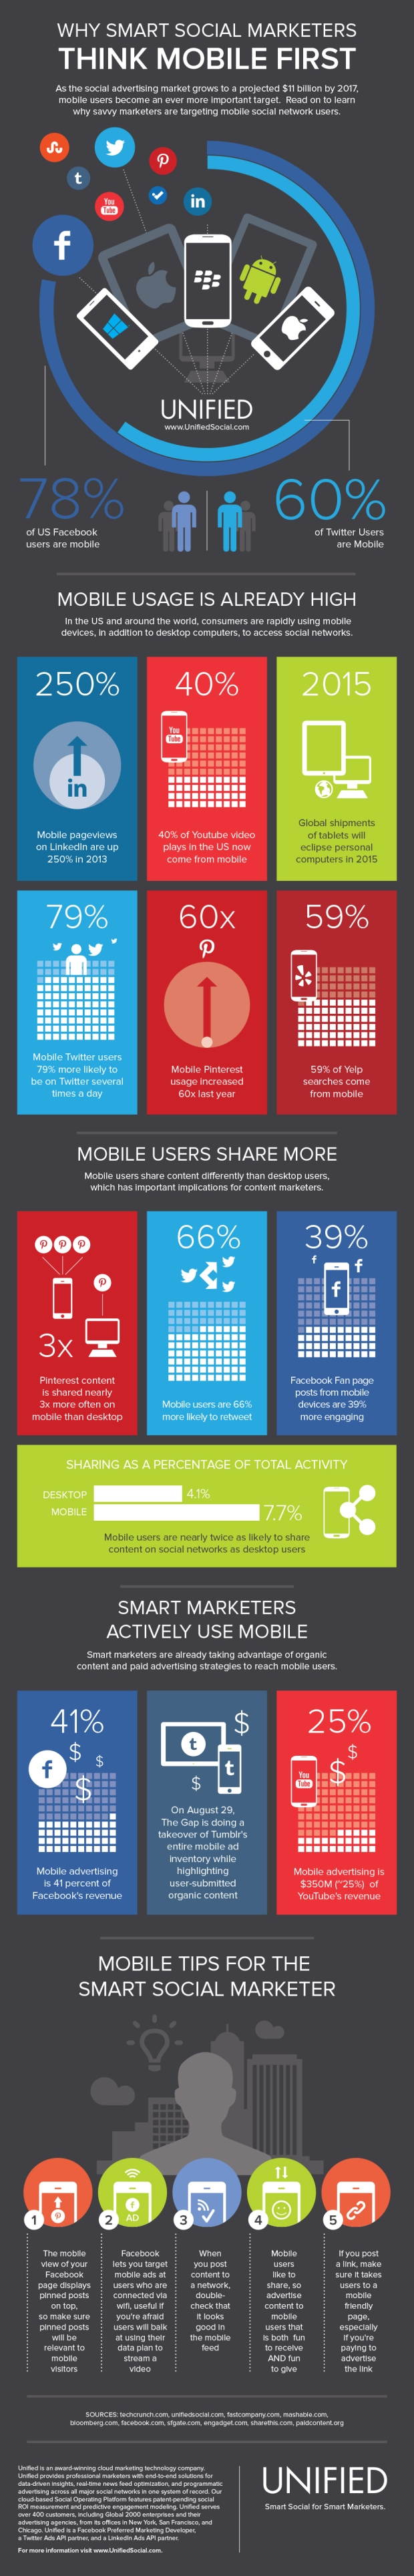 Why Smart Social Marketers Think Mobile First